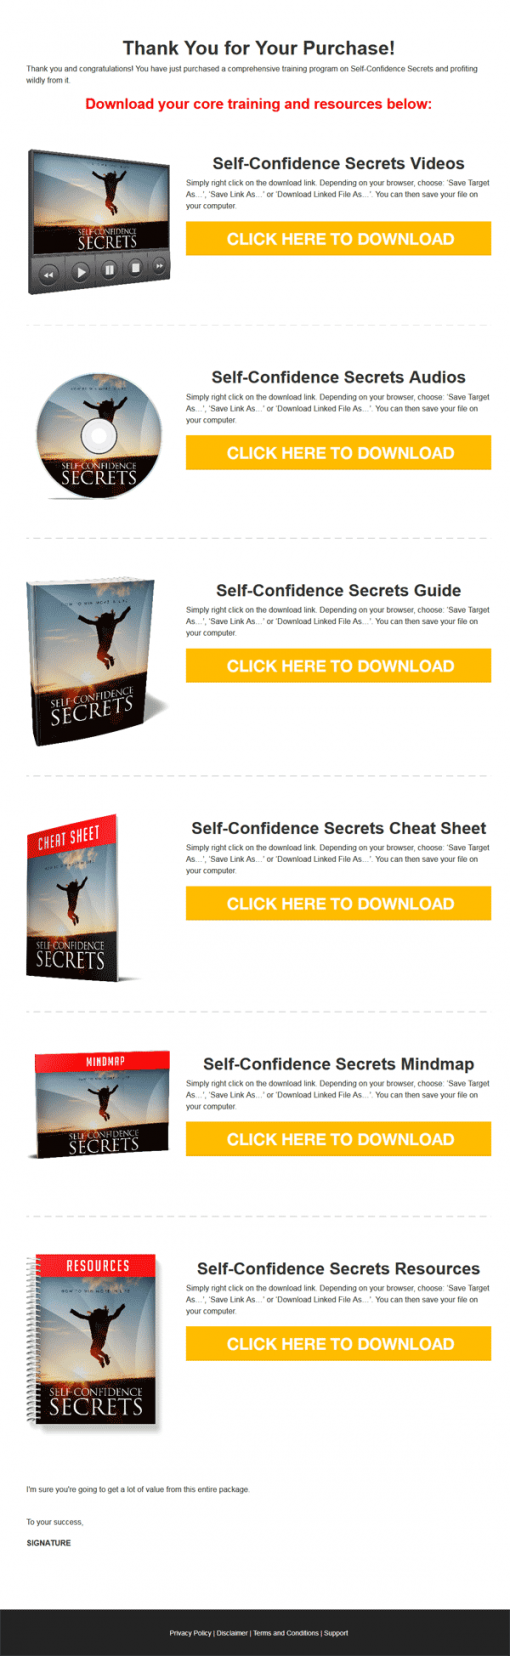 Self Confidence Secrets Ebook and Videos MRR